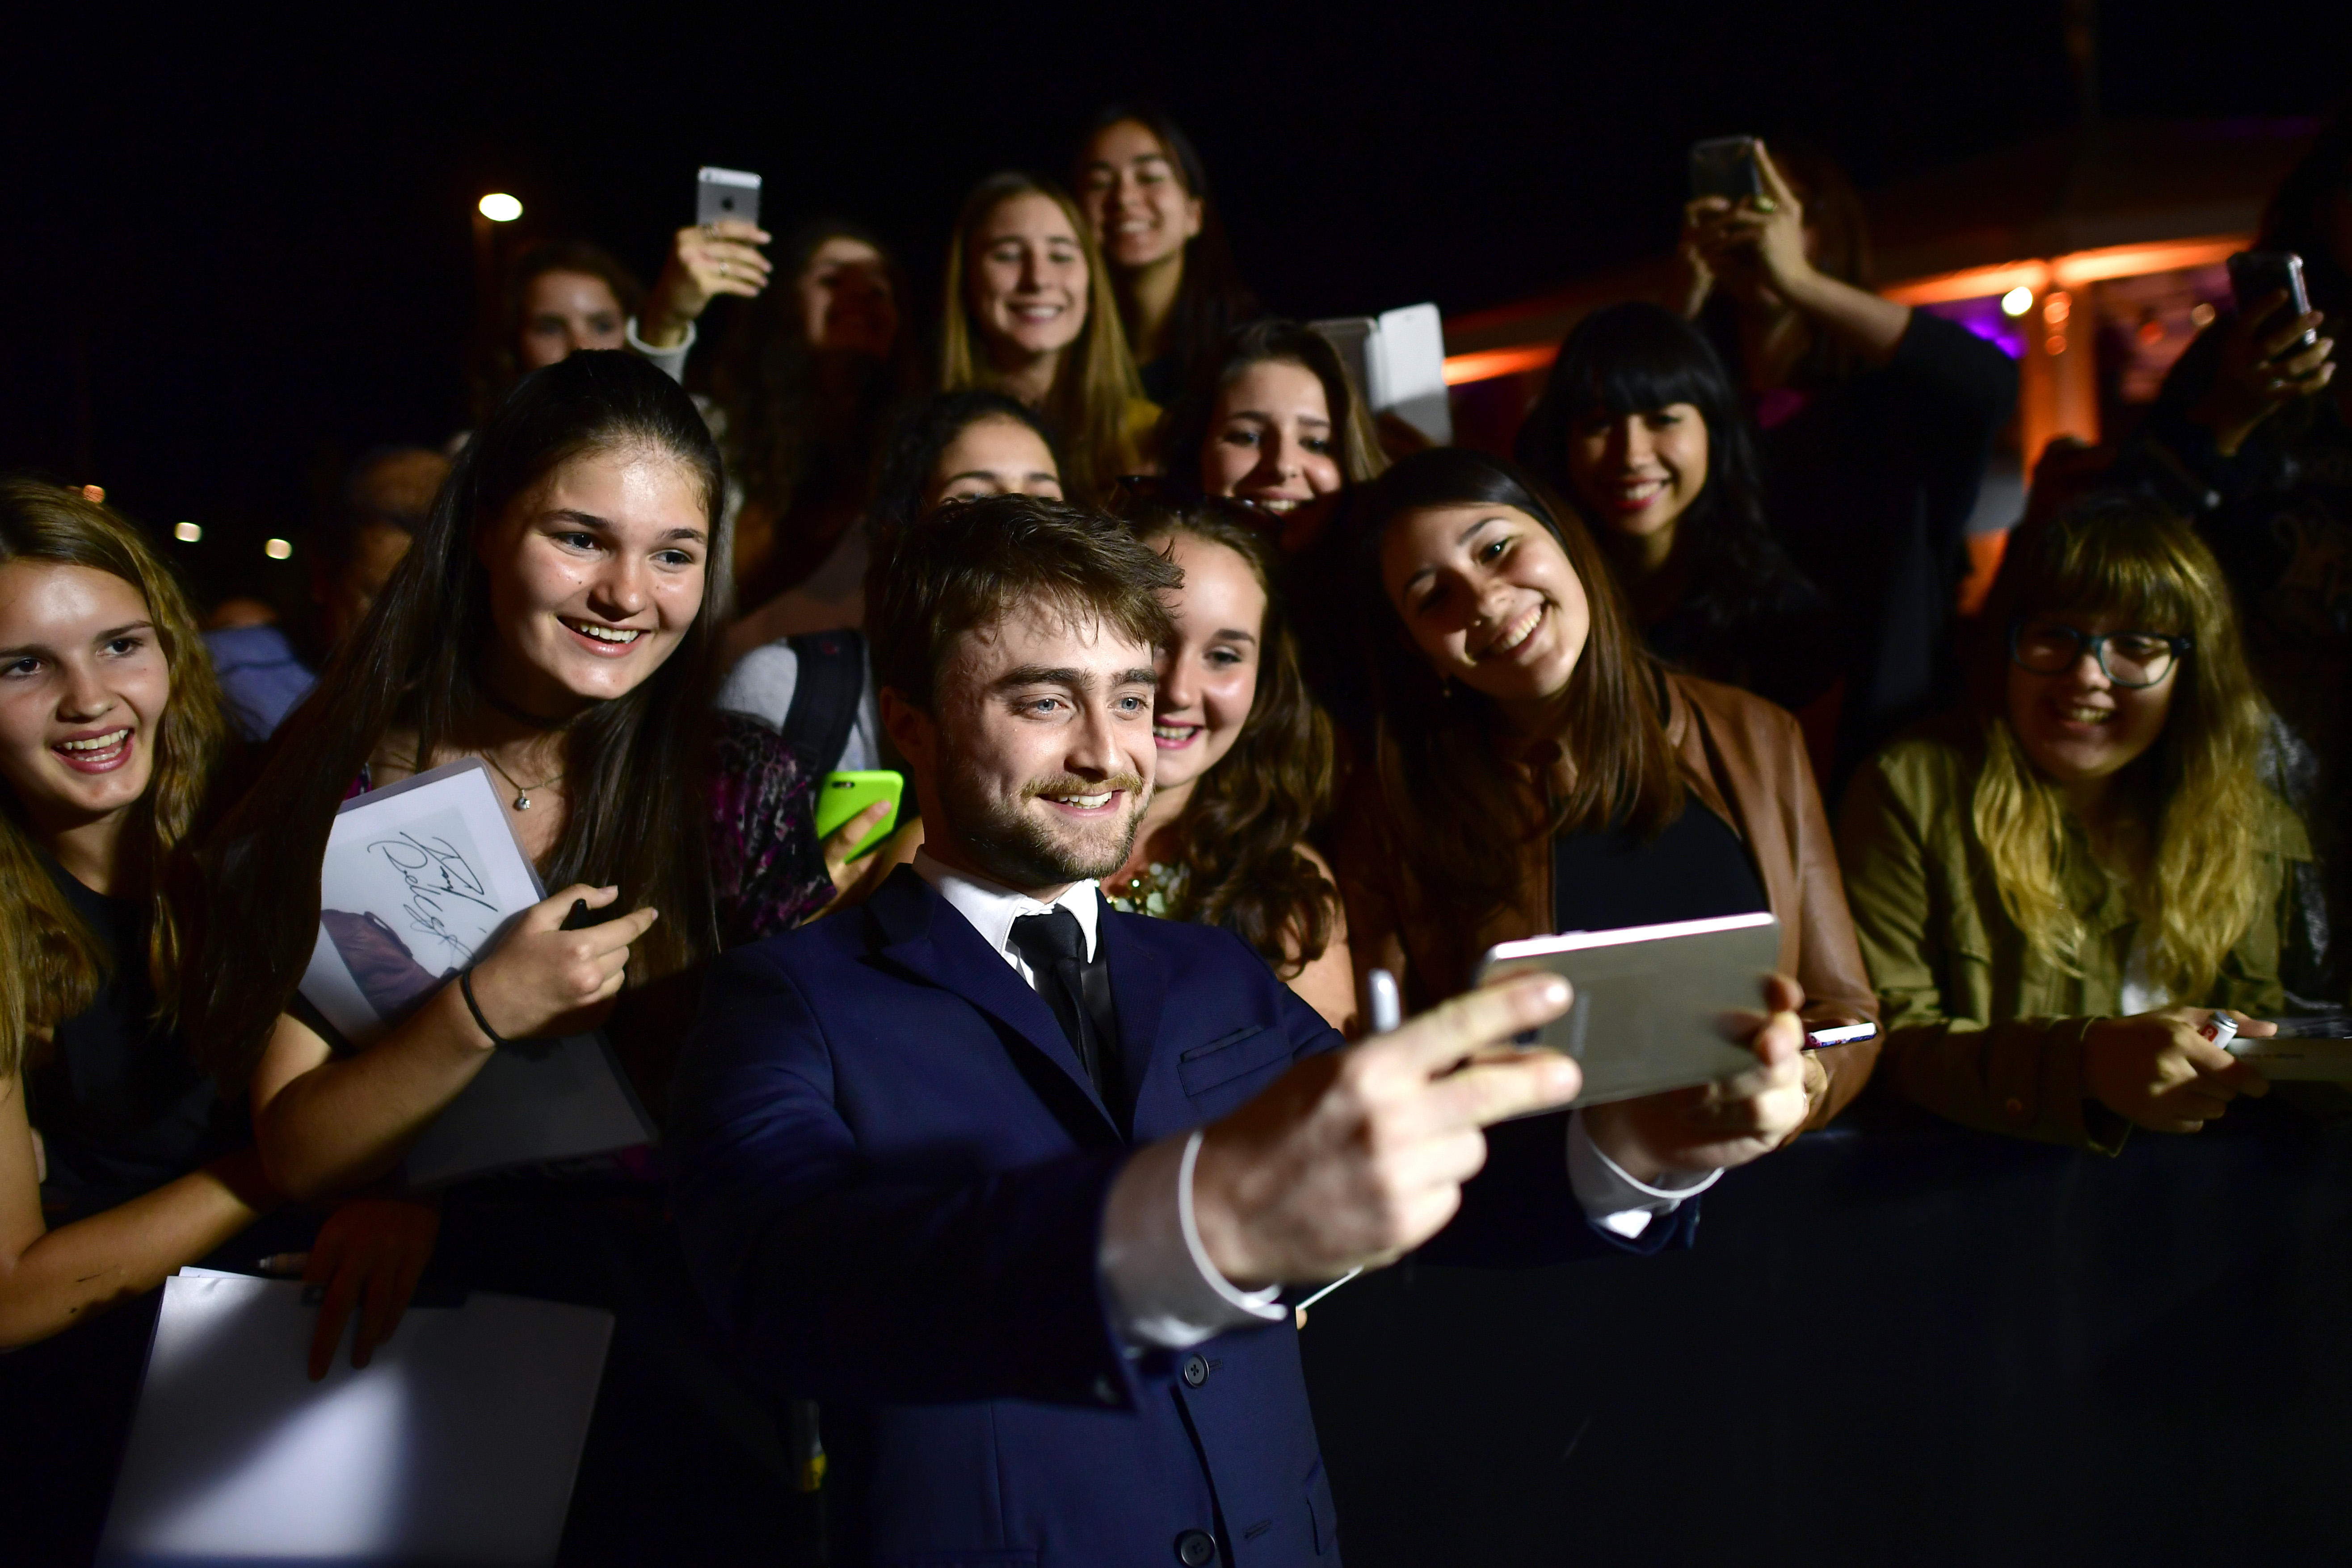 Daniel Radcliffe writes autographs and takes selfies with fans as he attends the 'Imperium' premiere during the 12th Zurich Film Festival on September 30, 2016 in Zurich, Switzerland.